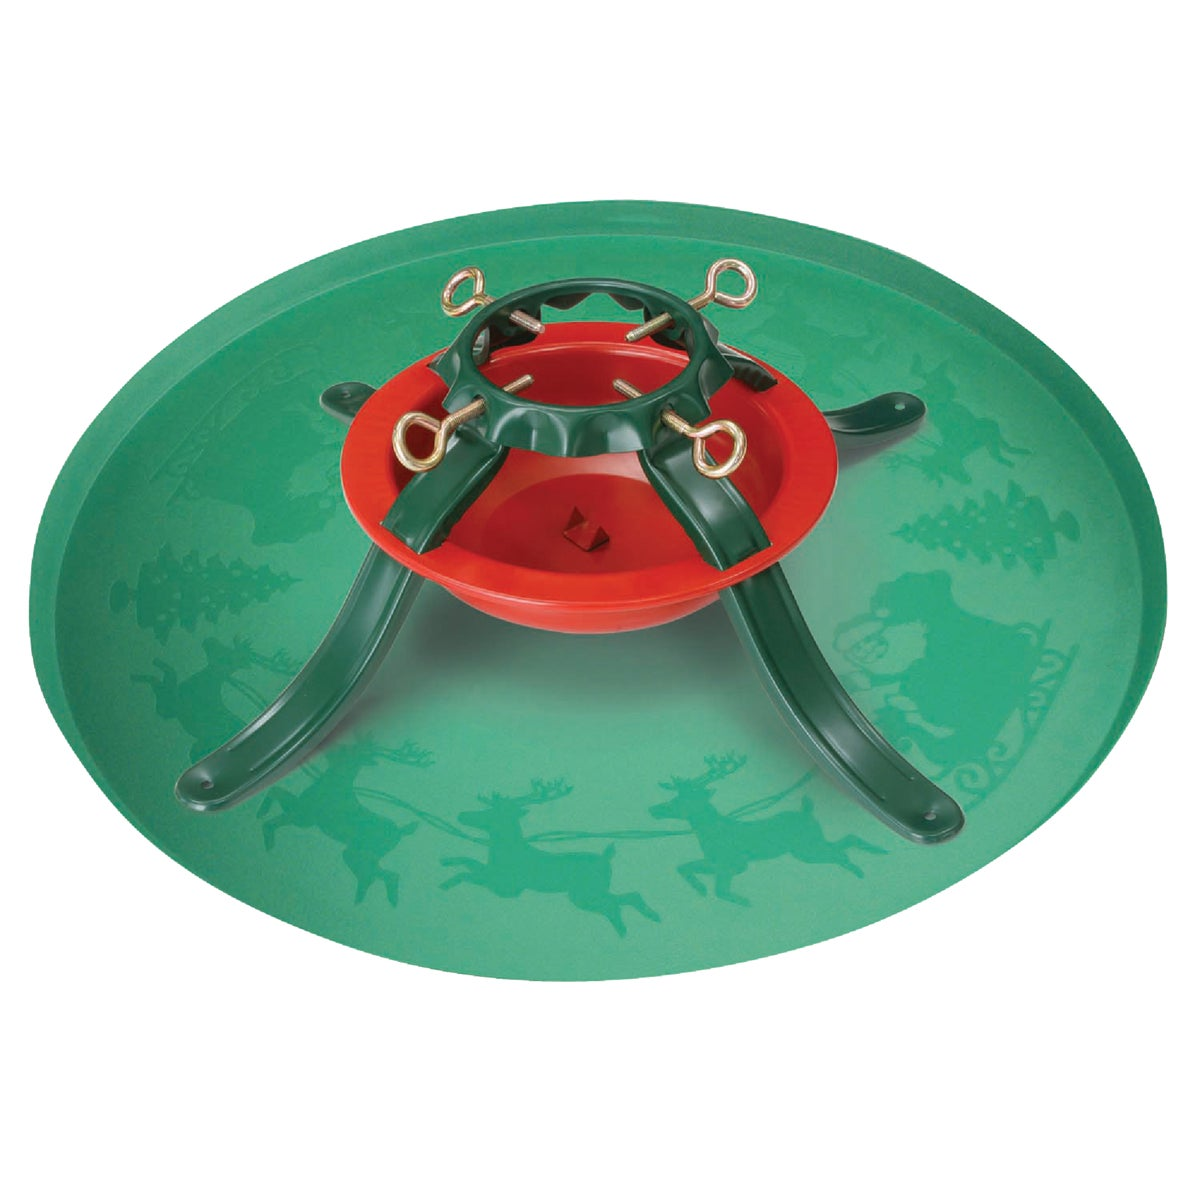 TREE STAND TRAY - XTRA by Jack Post   Chr Dom